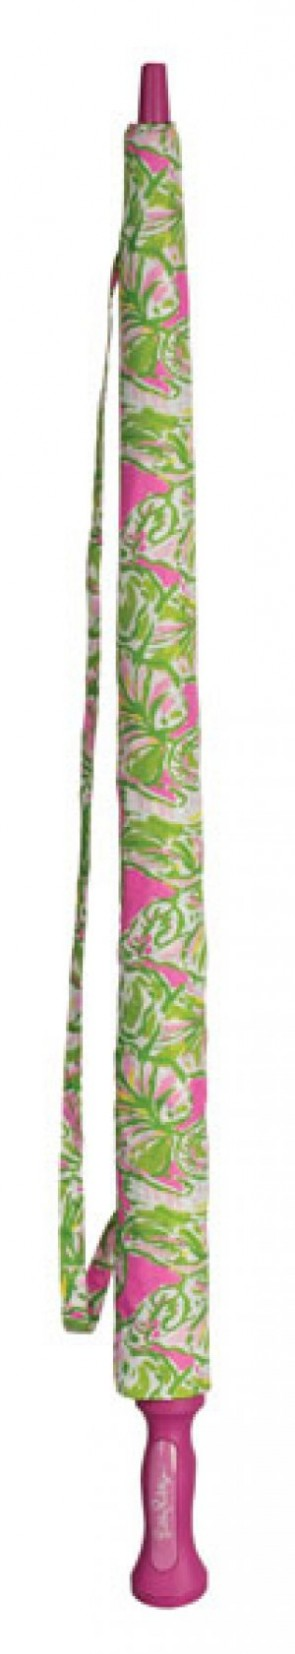 Lily Pulitzer Umbrella, Large